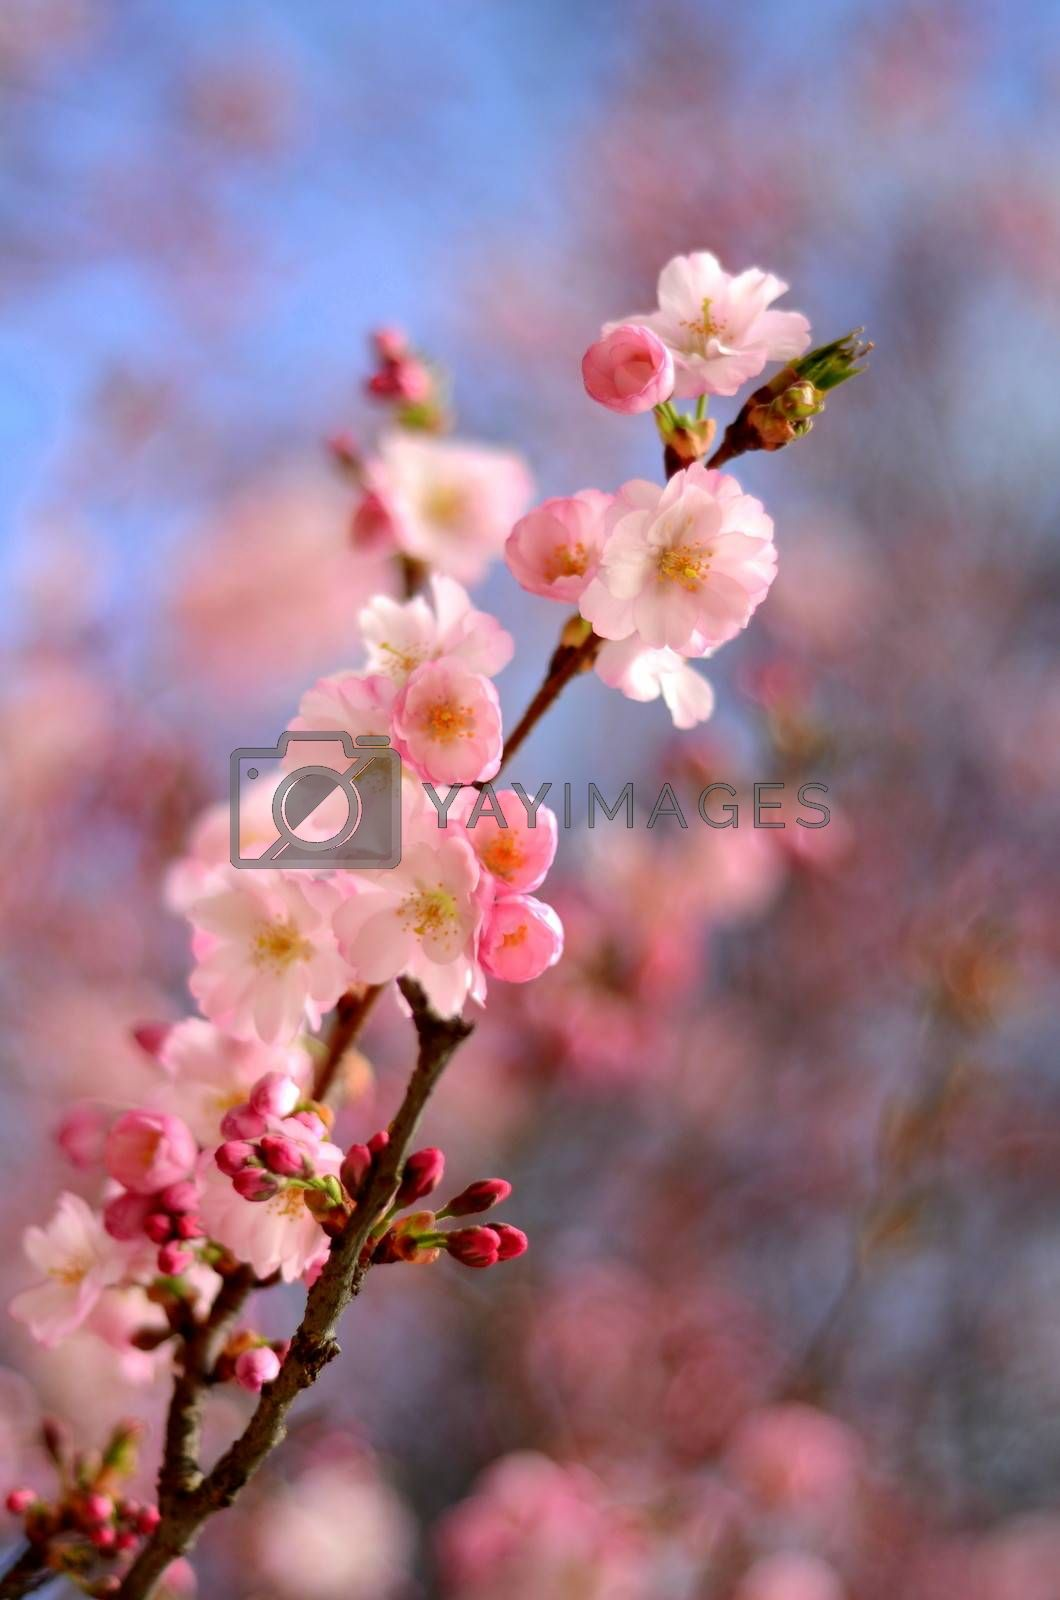 Spring Image Of Pink Blossom Flower With Shallow Depth Of Focus